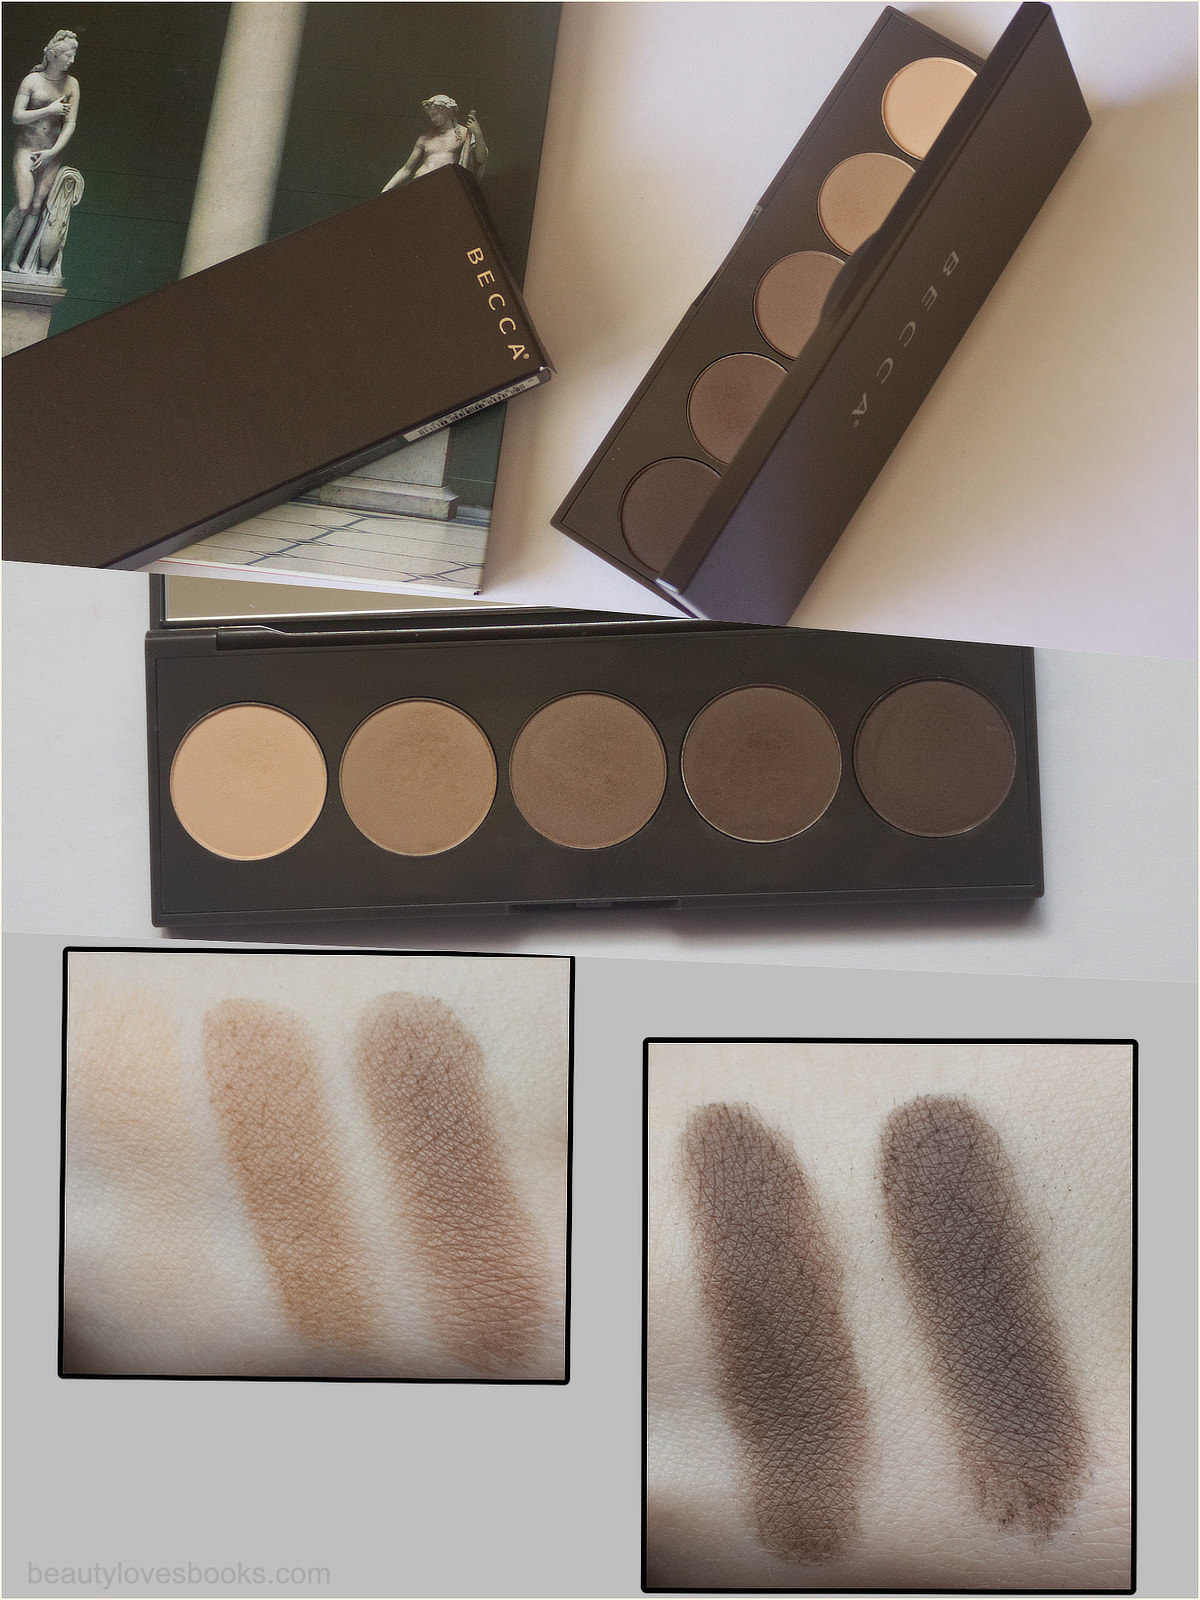 Becca Ombré Nudes Eye Palette - swatches